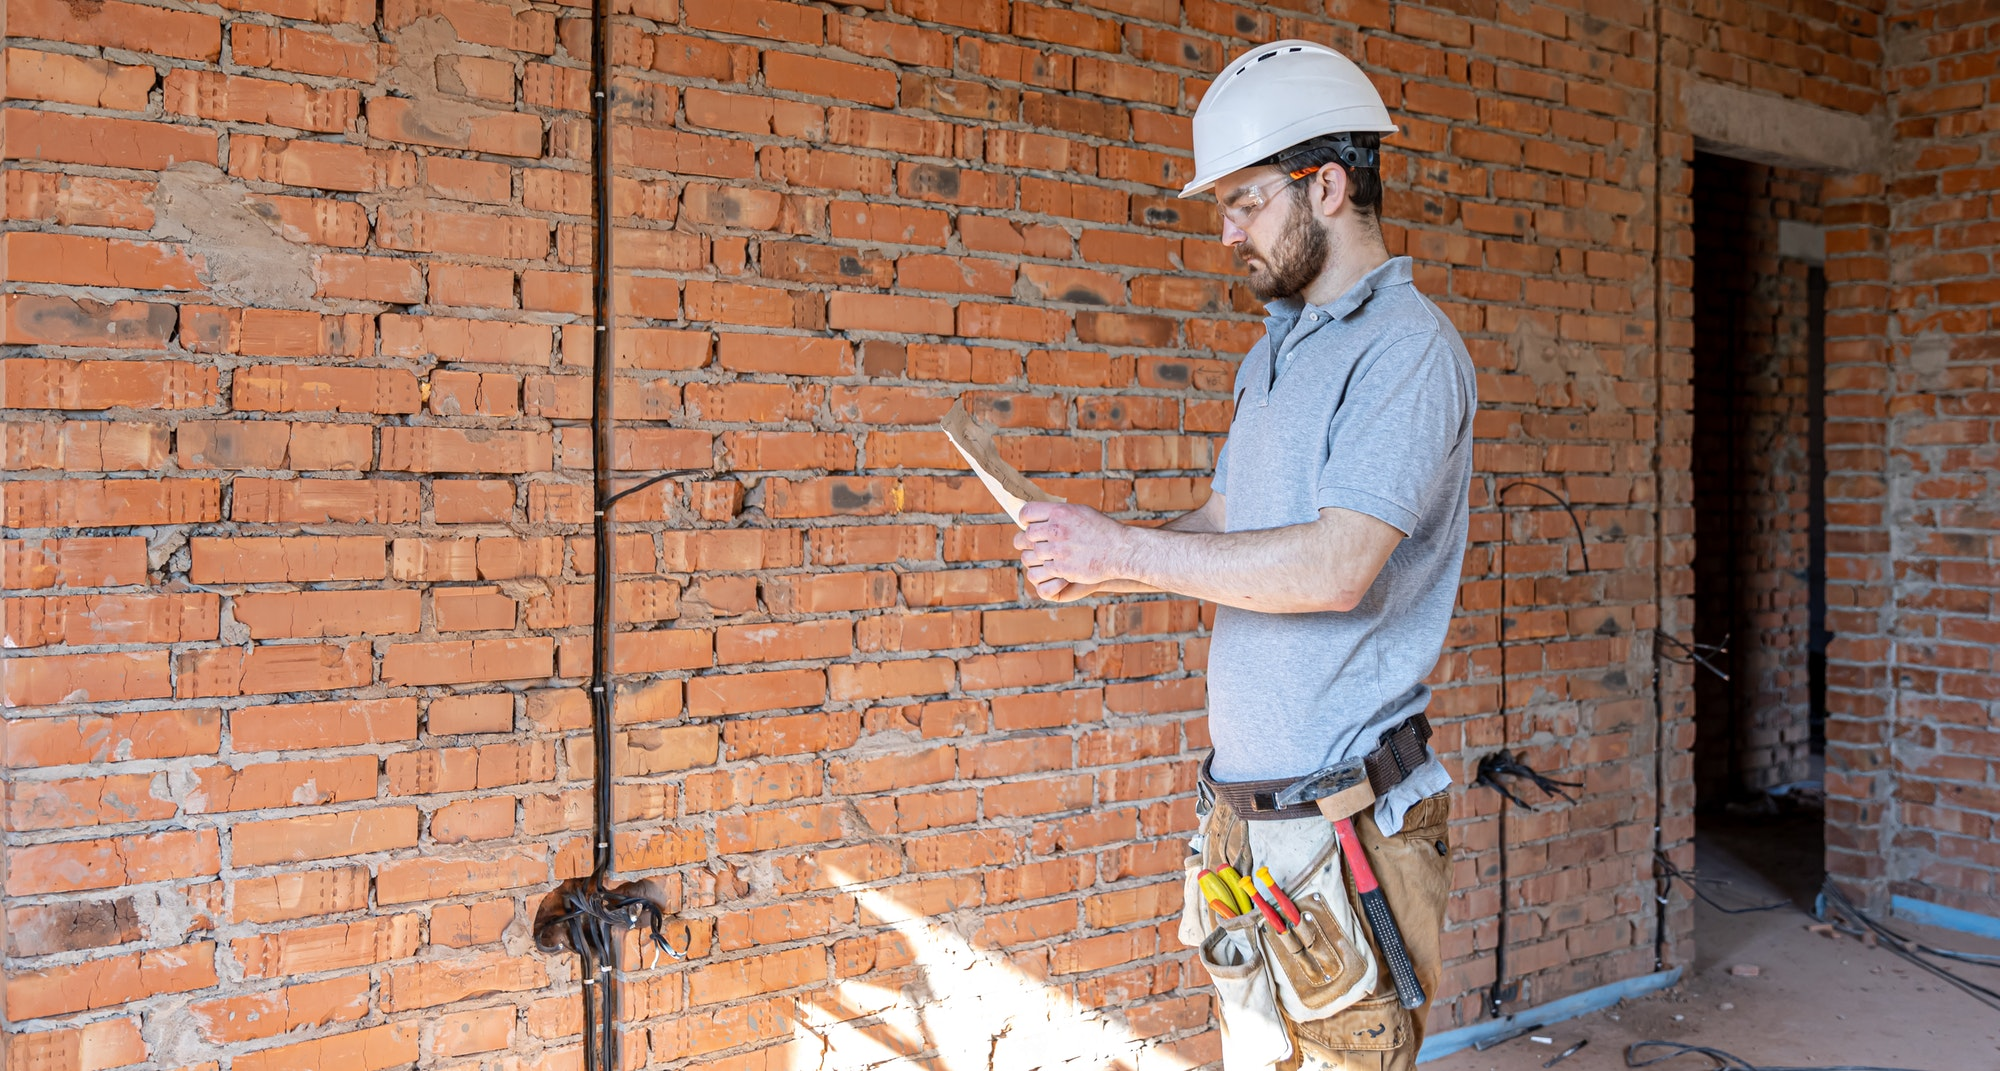 An electrician contractor examines a blueprint at a construction site.